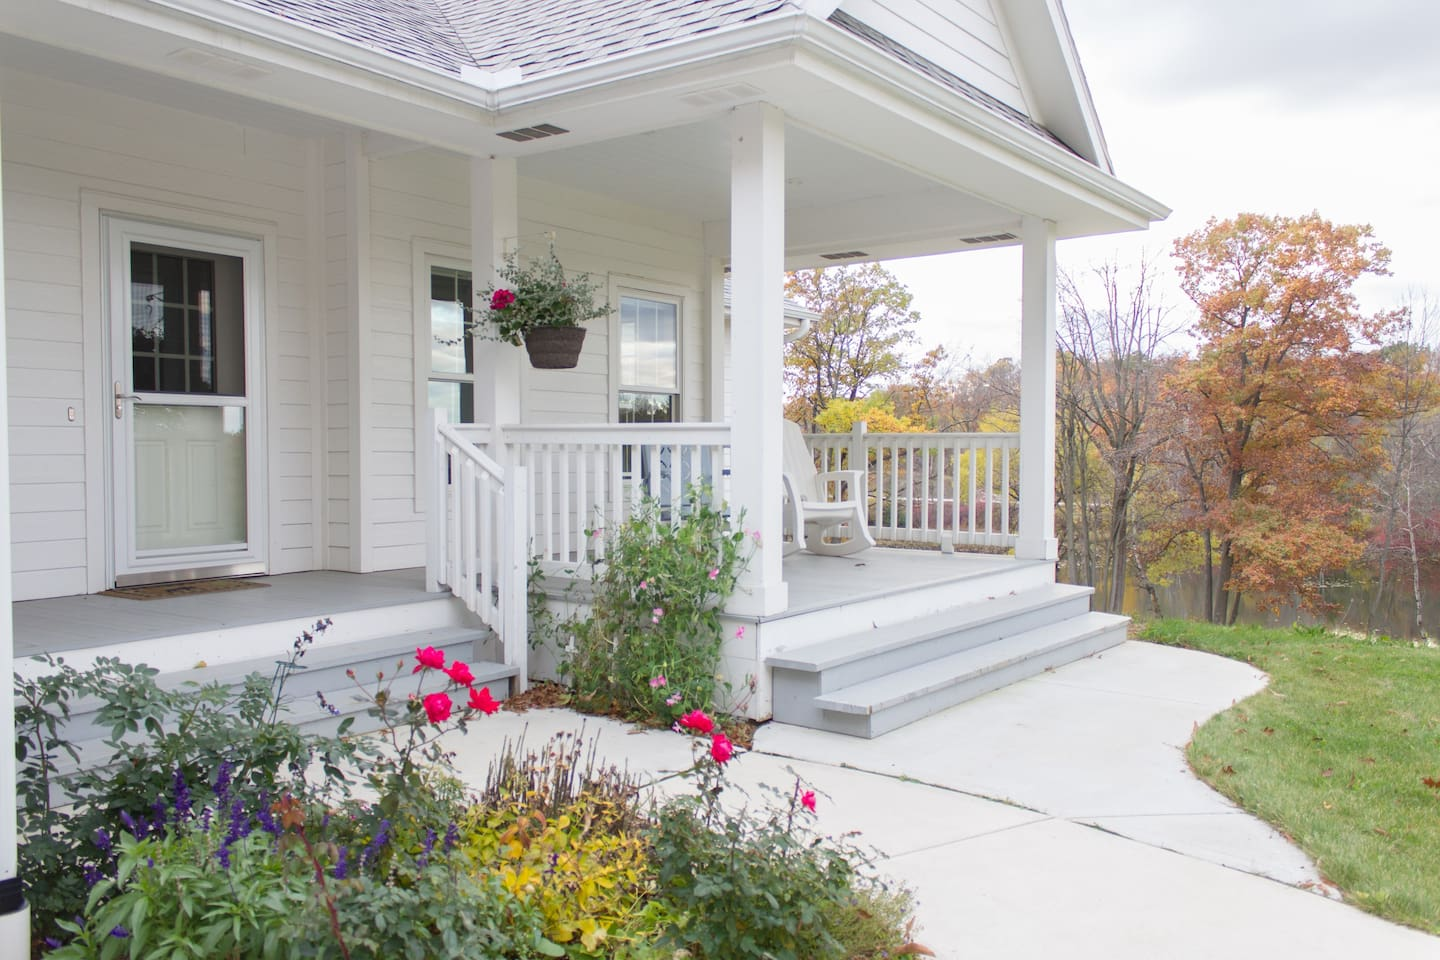 Welcoming porch